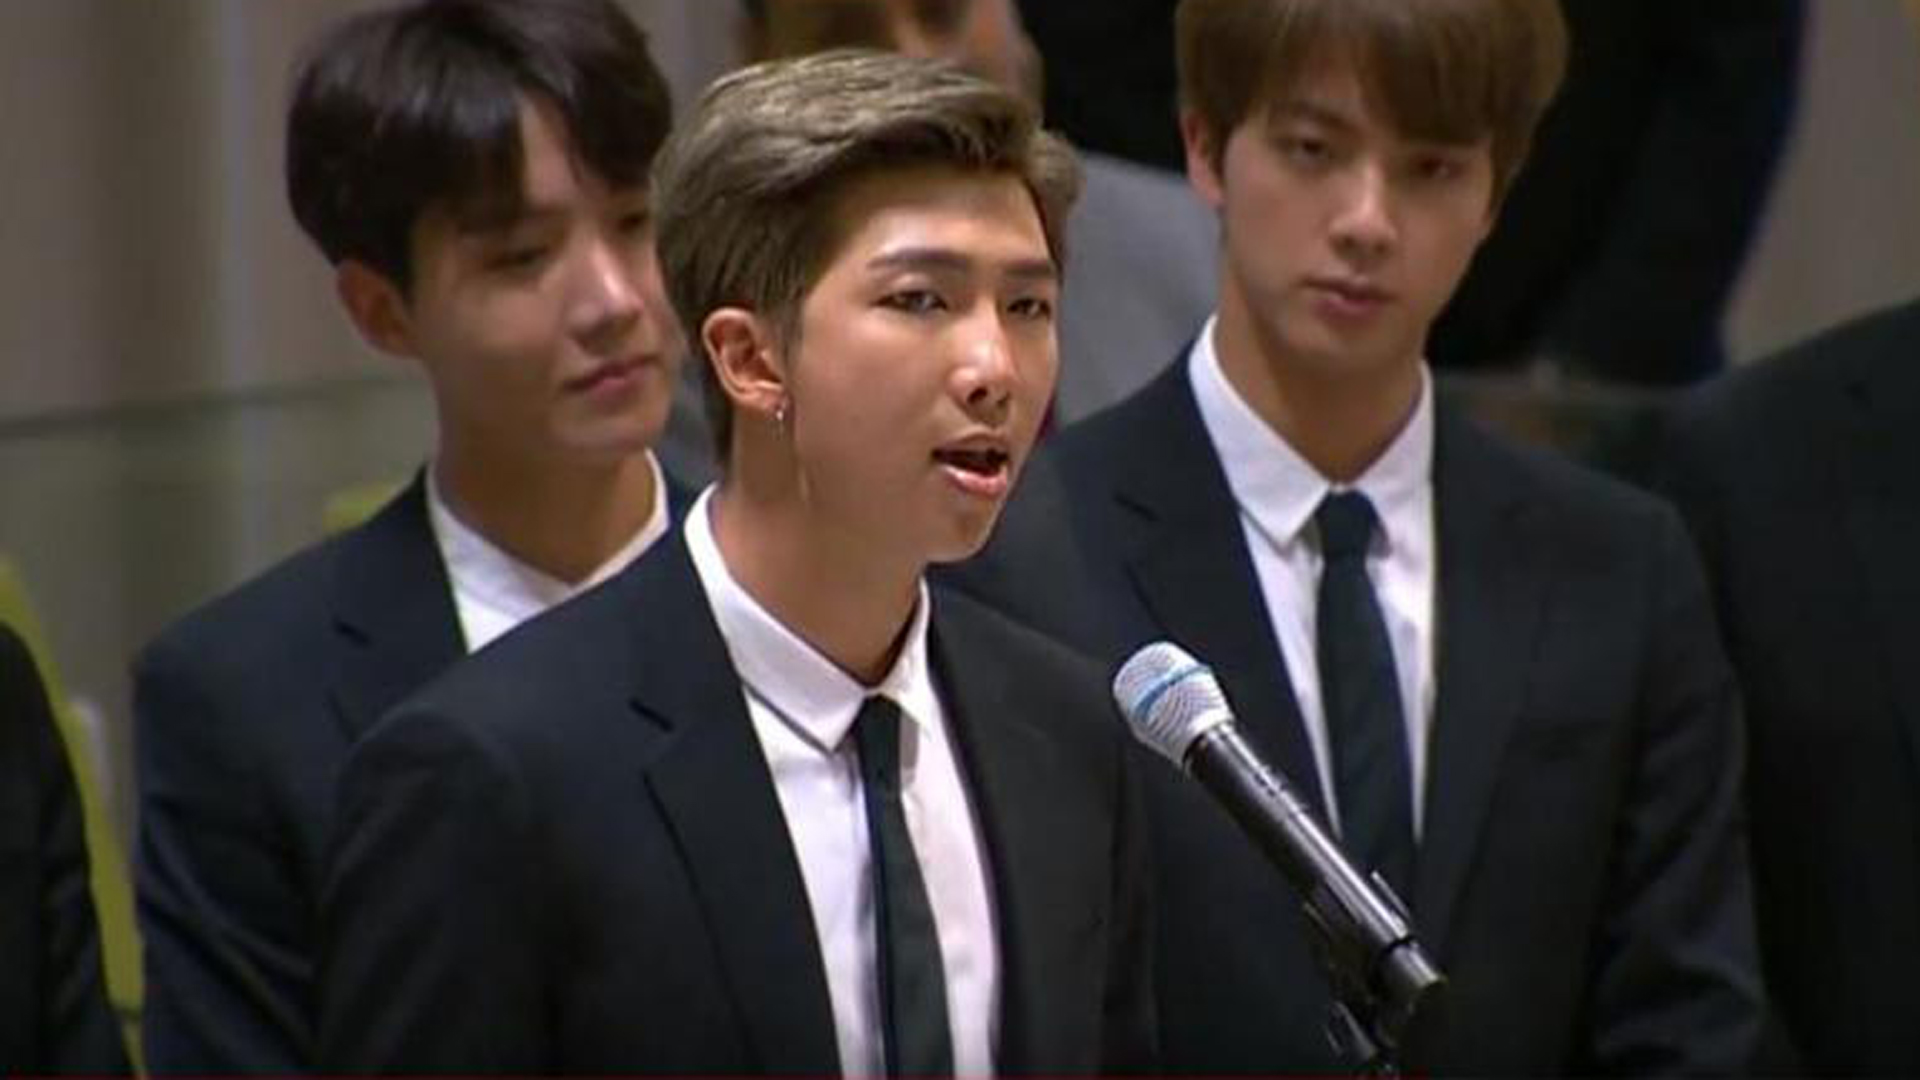 K-pop band BTS address the UN General Assembly in New York. (Credit: UNTV)